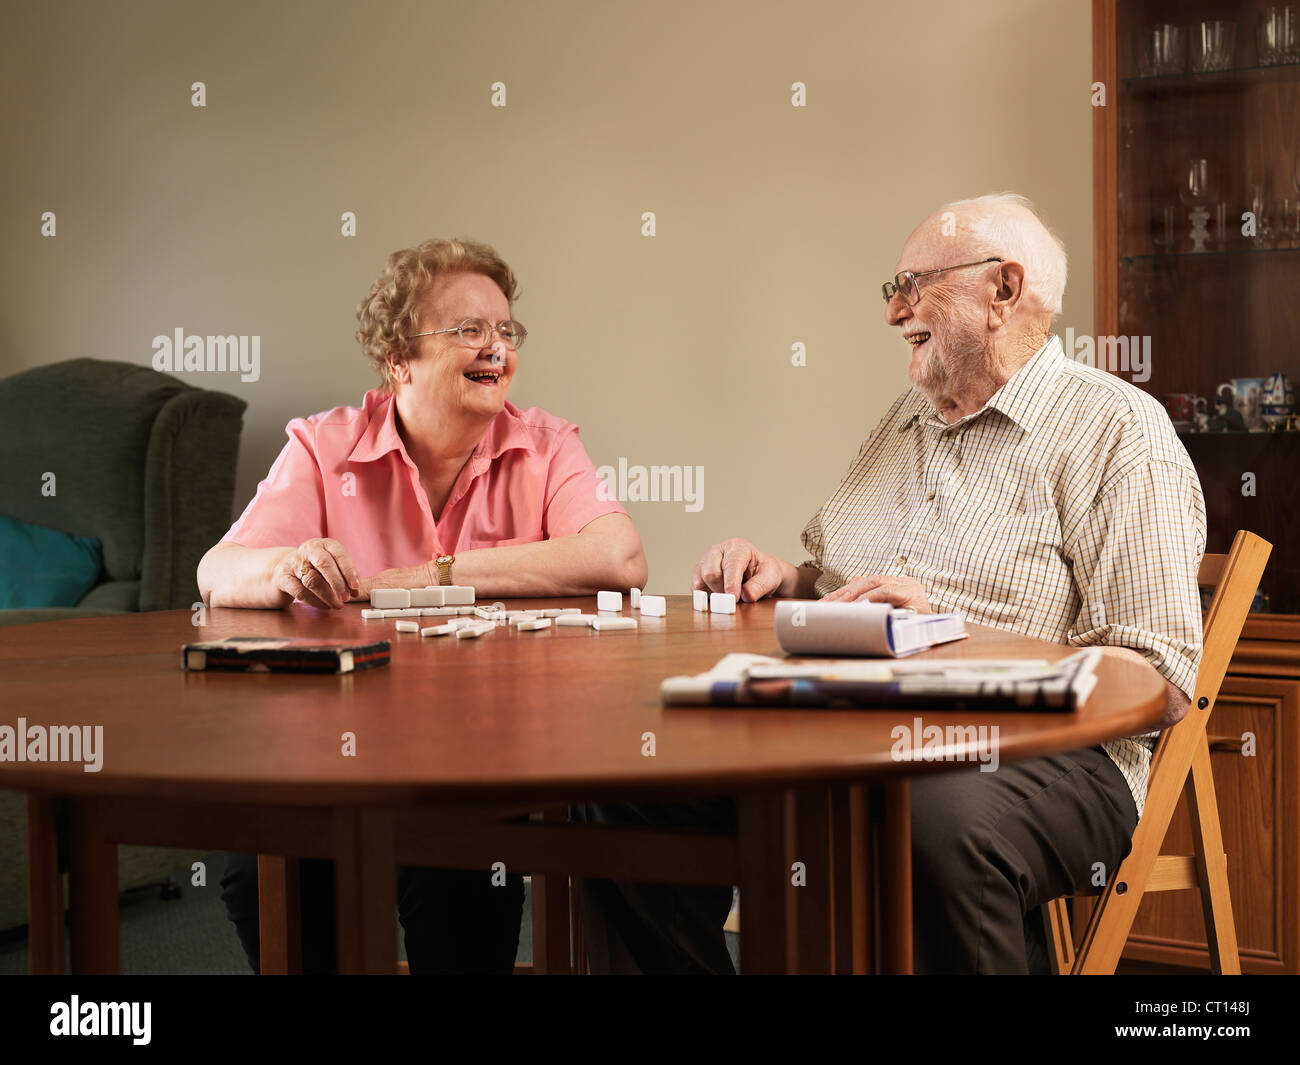 Older couple playing dominoes together - Stock Image